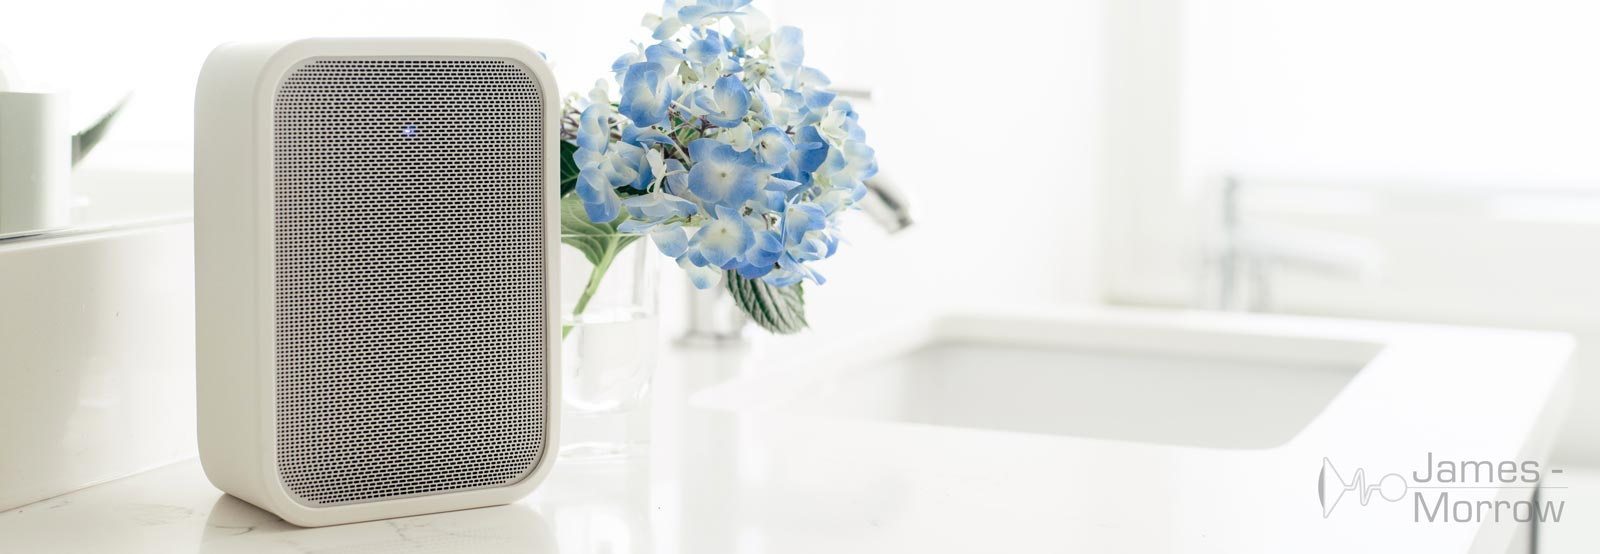 bluesound pulse flex 2i white on white table with blue flowers lifestyle banner image